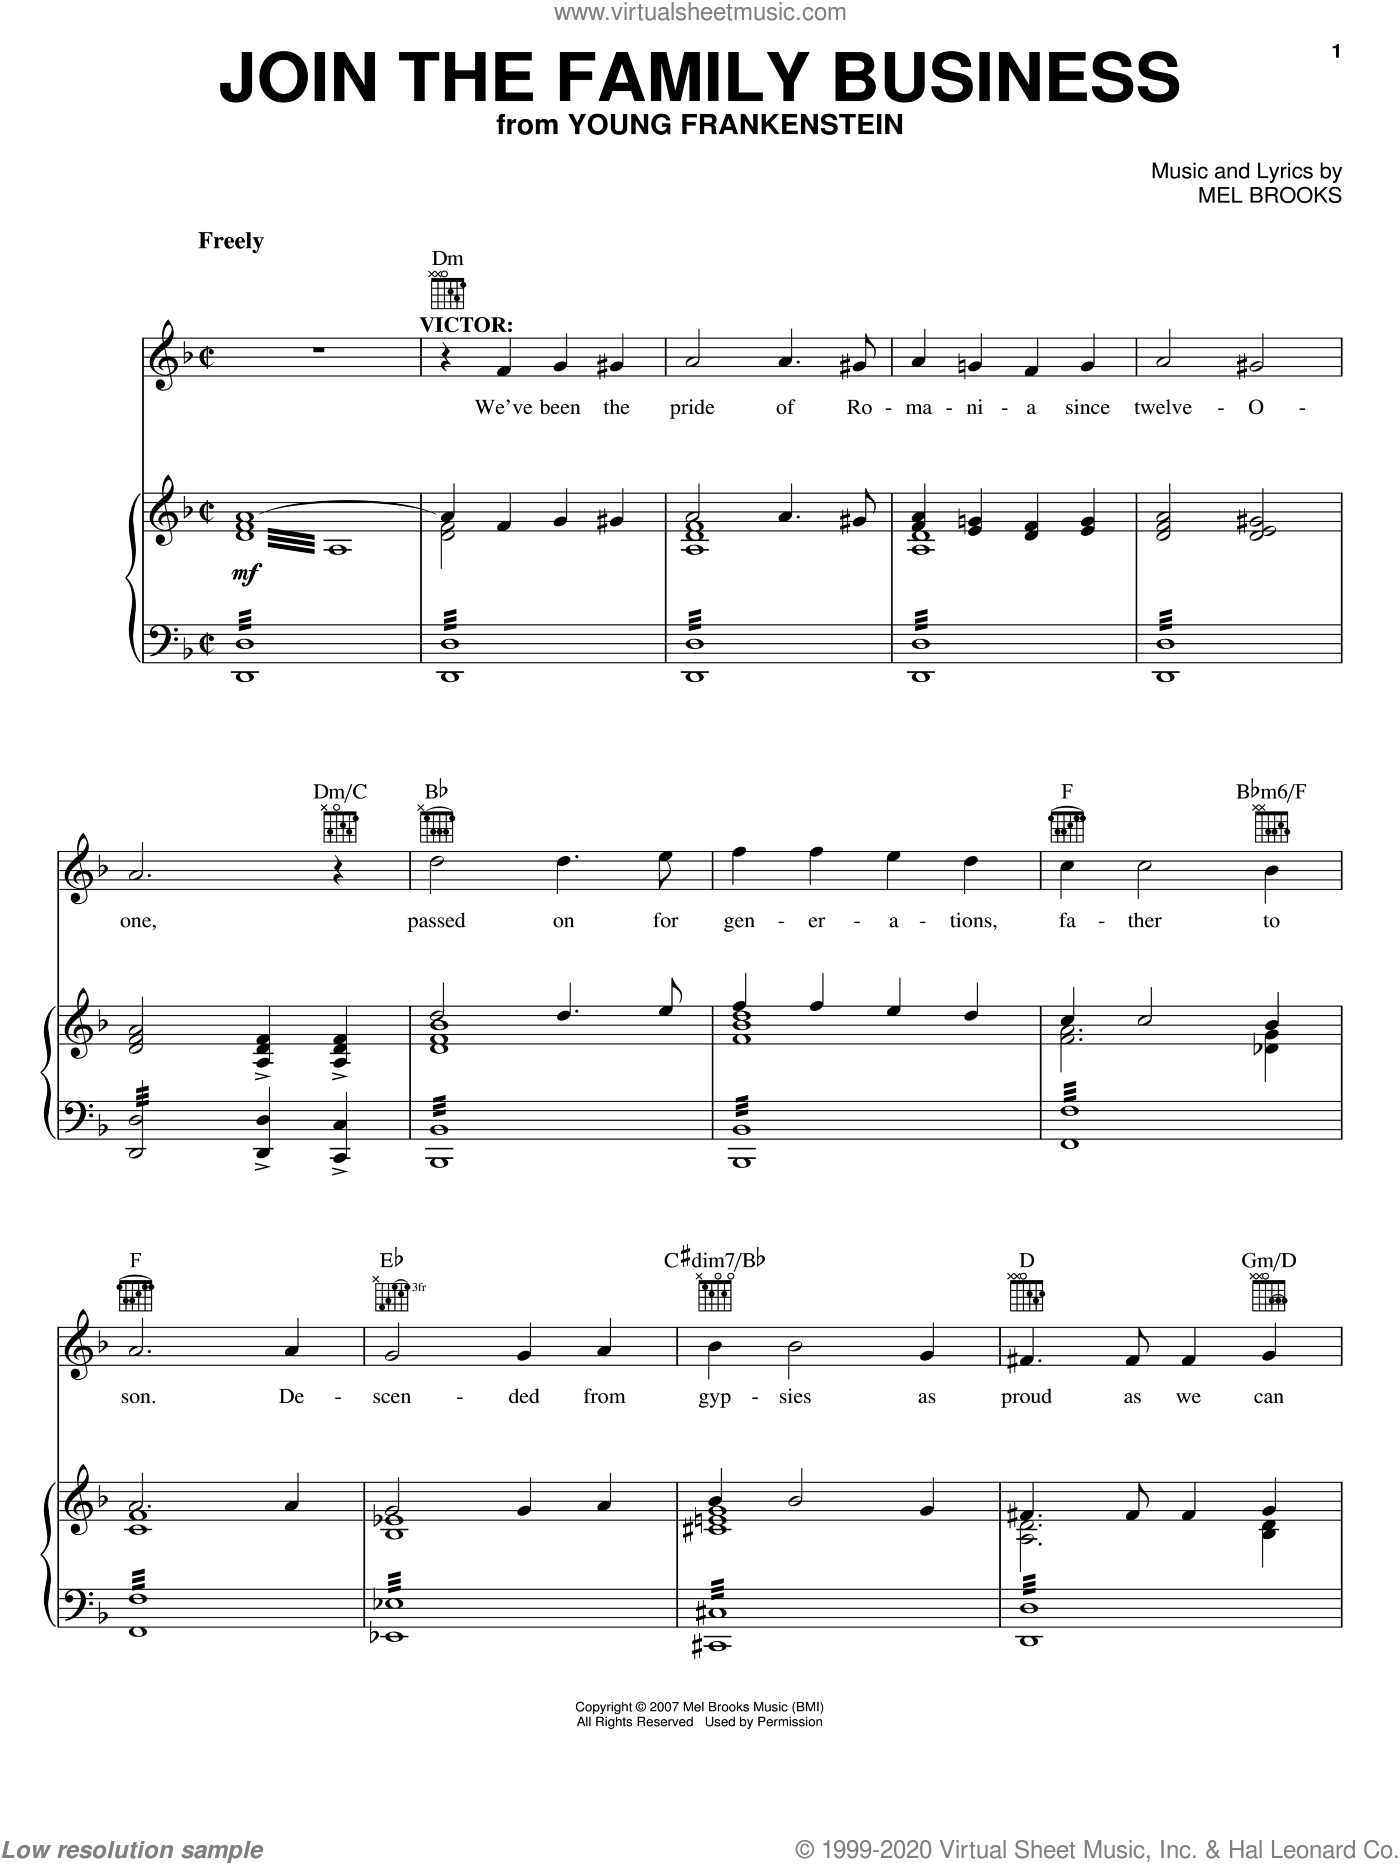 Join The Family Business sheet music for voice, piano or guitar by Mel Brooks. Score Image Preview.